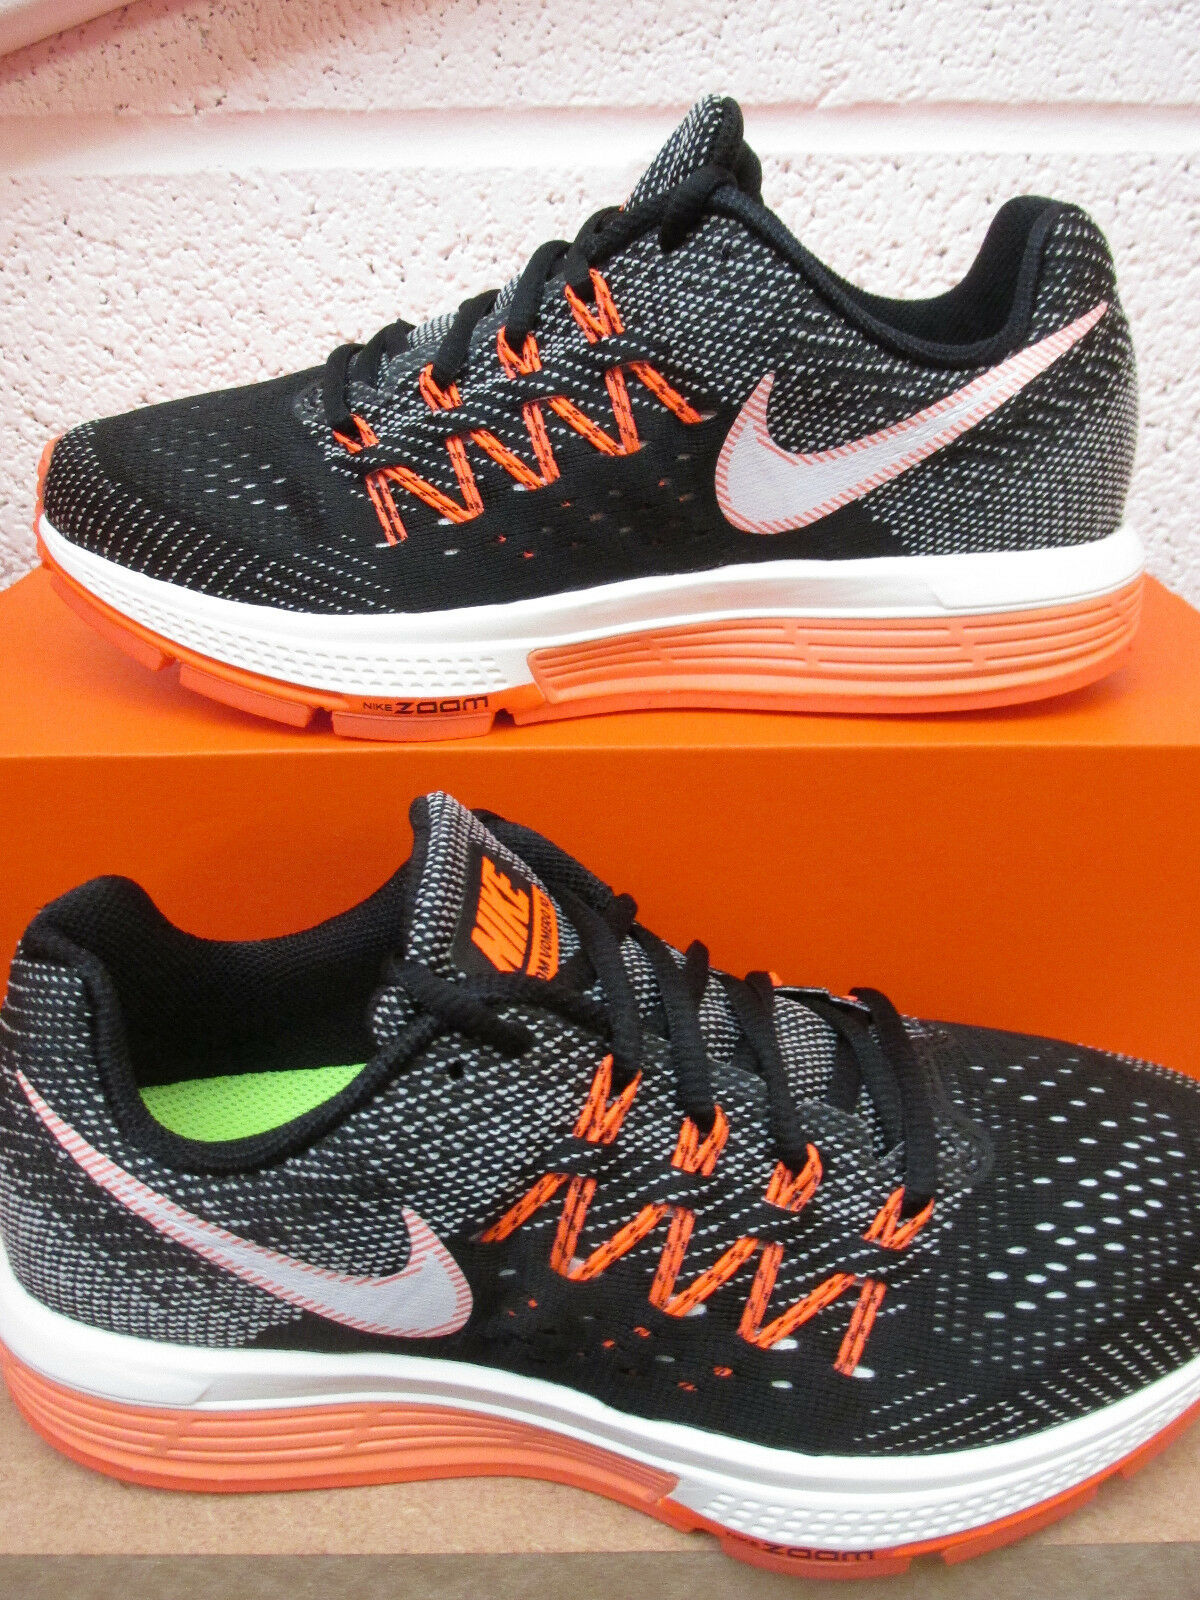 nike womens air zoom vomero 10 running trainers 717441 008 sneakers shoes